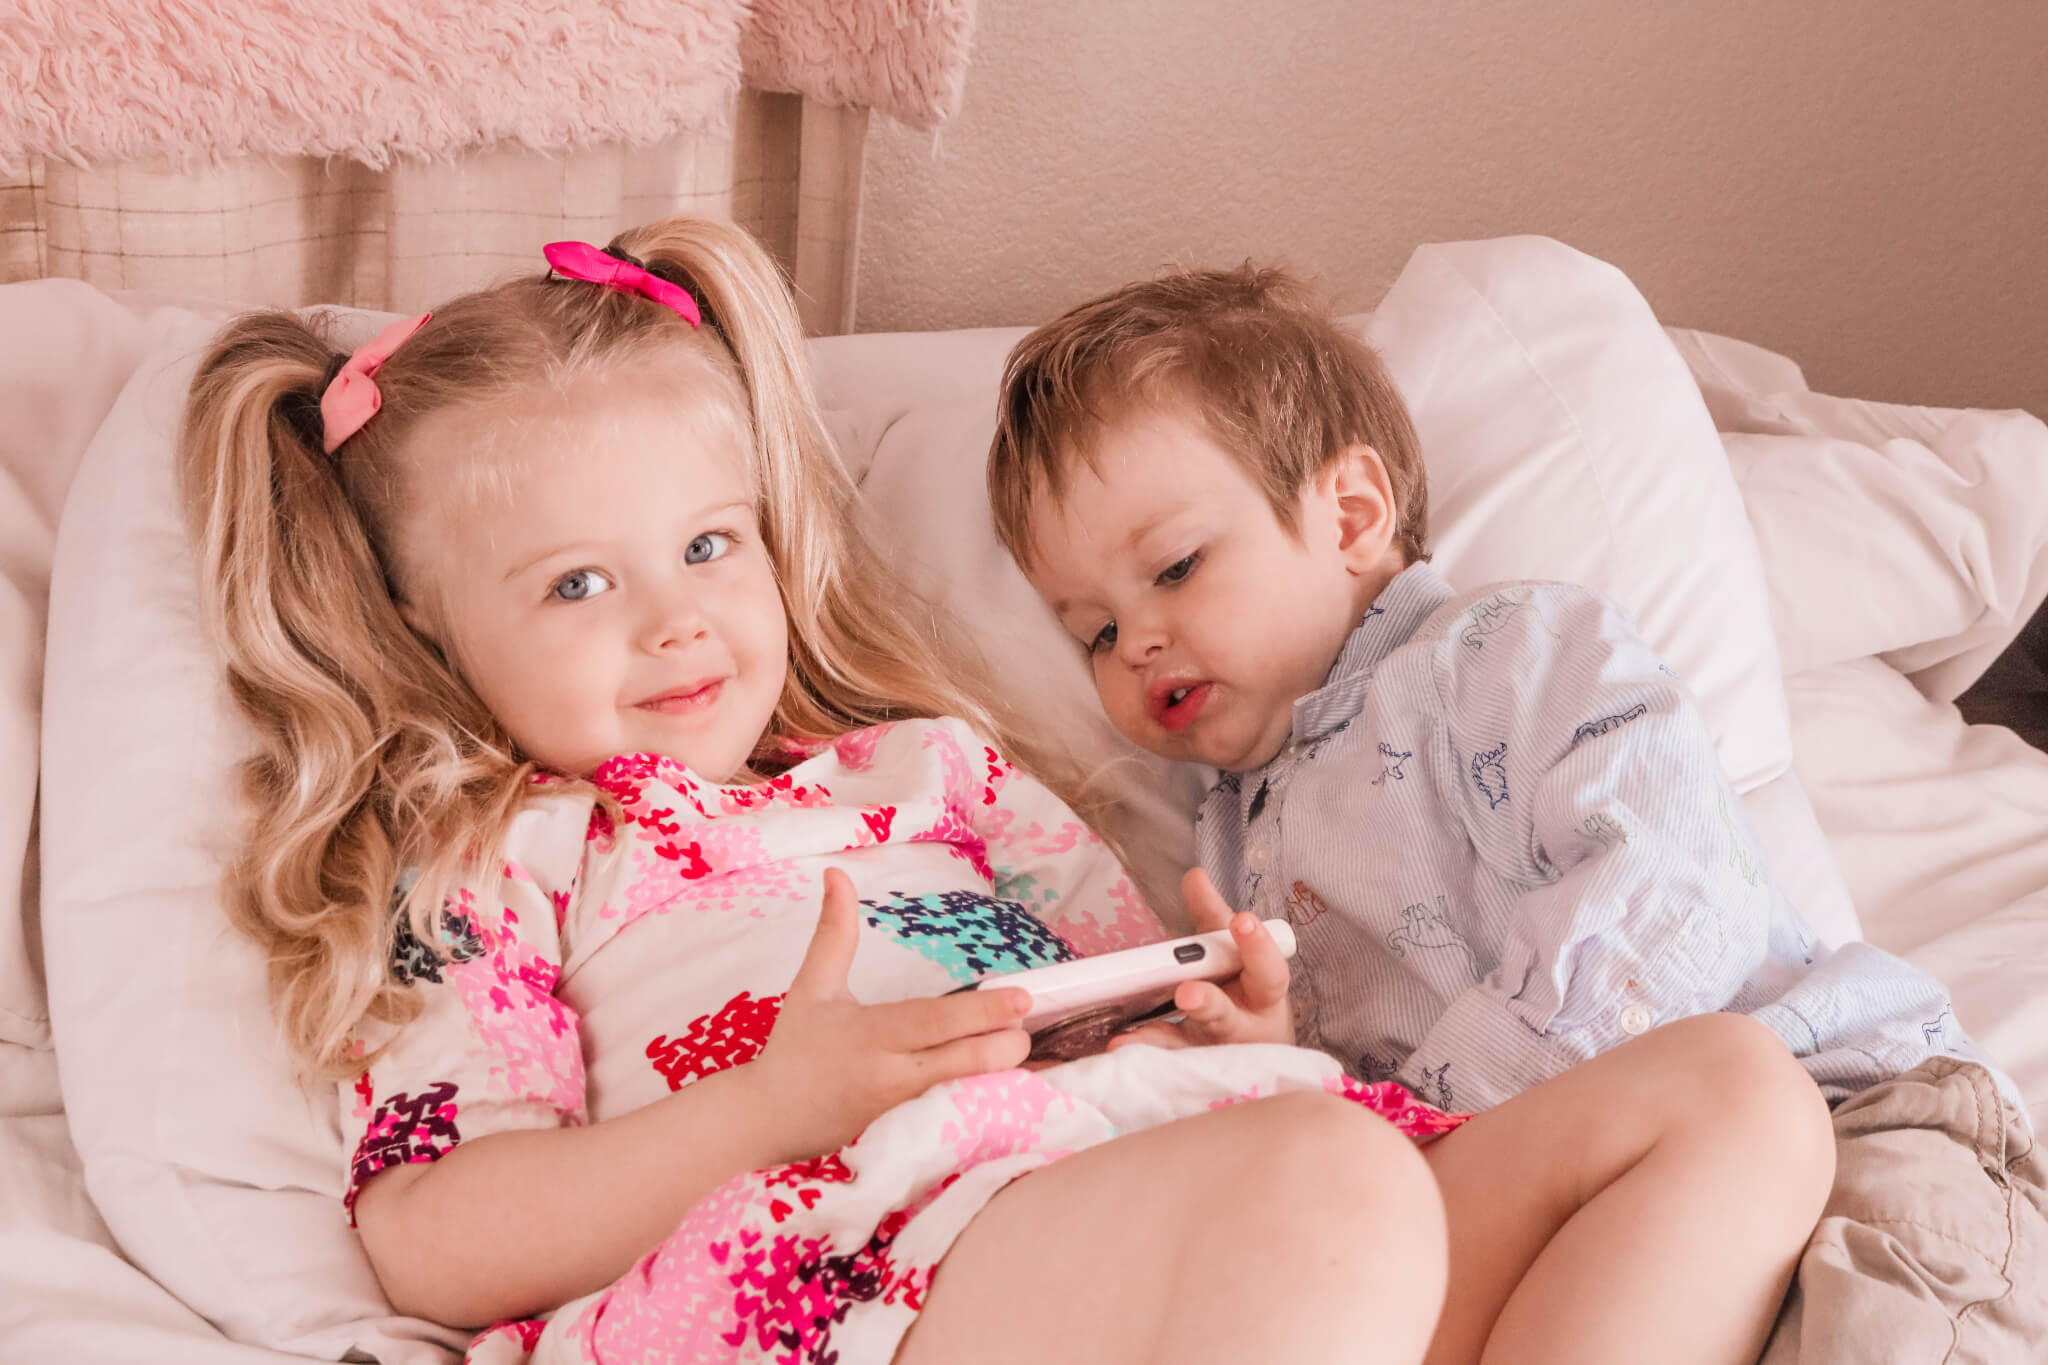 Toddlers Addicted to Smart Phone